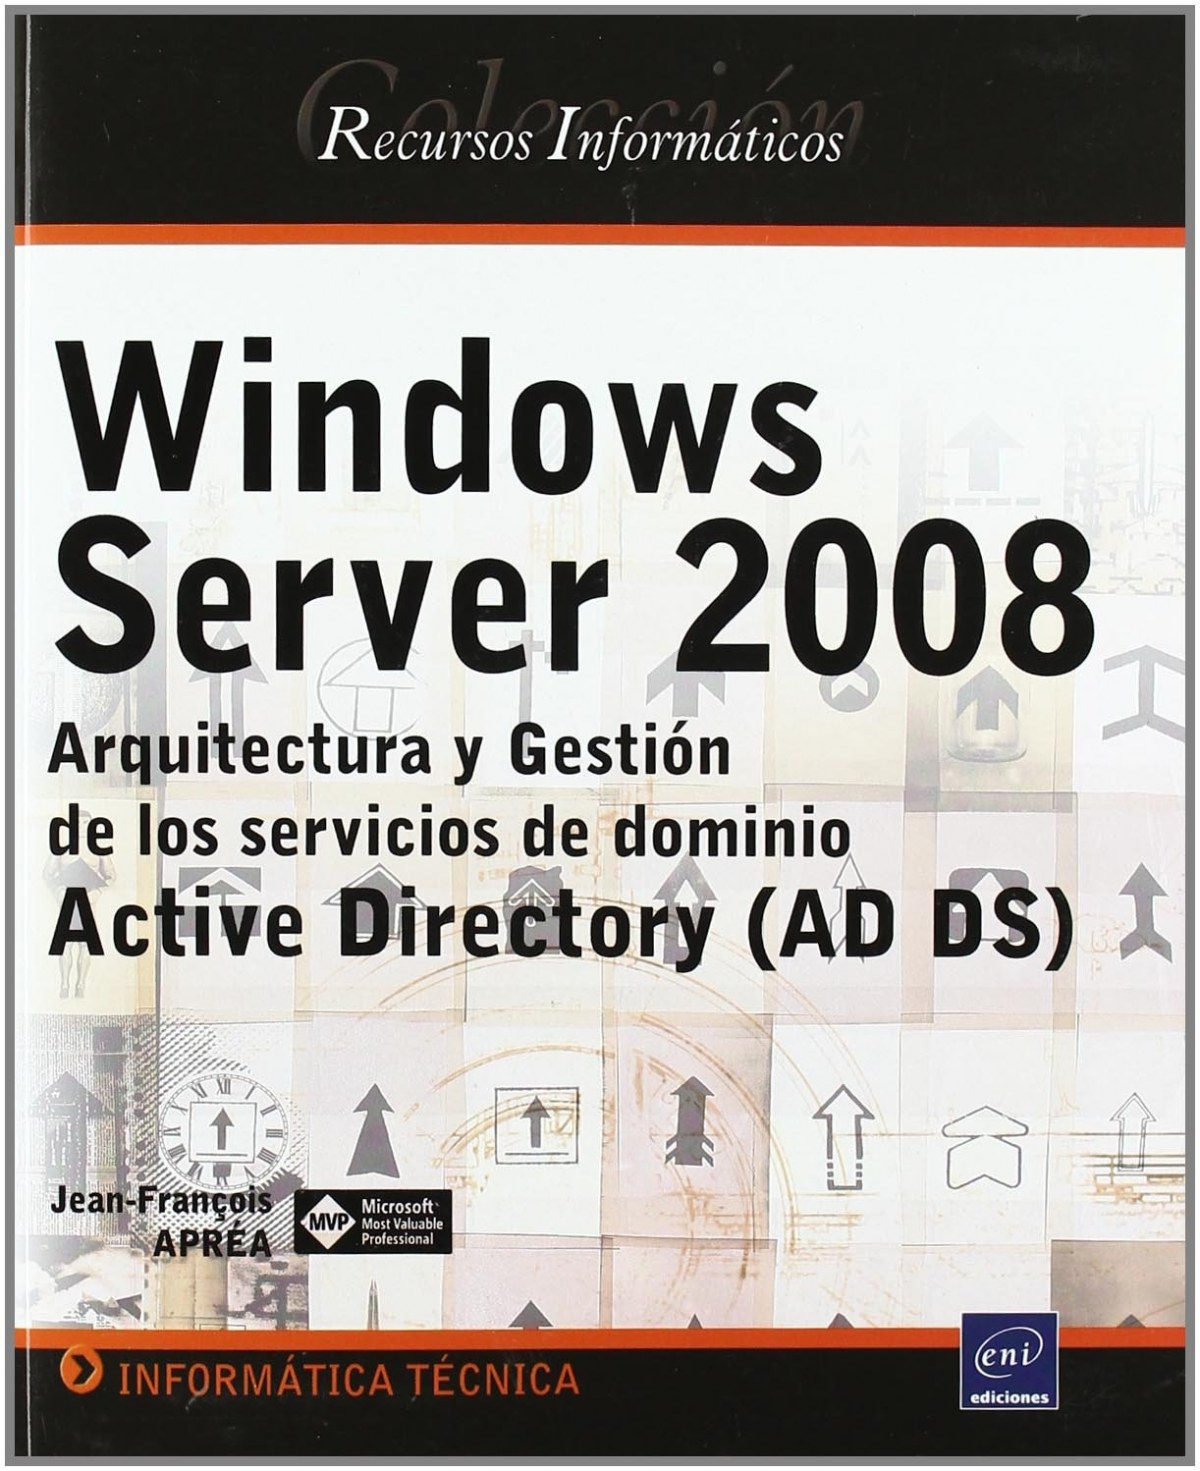 Recursos Inform. Windows Server 2008 - Active Directory